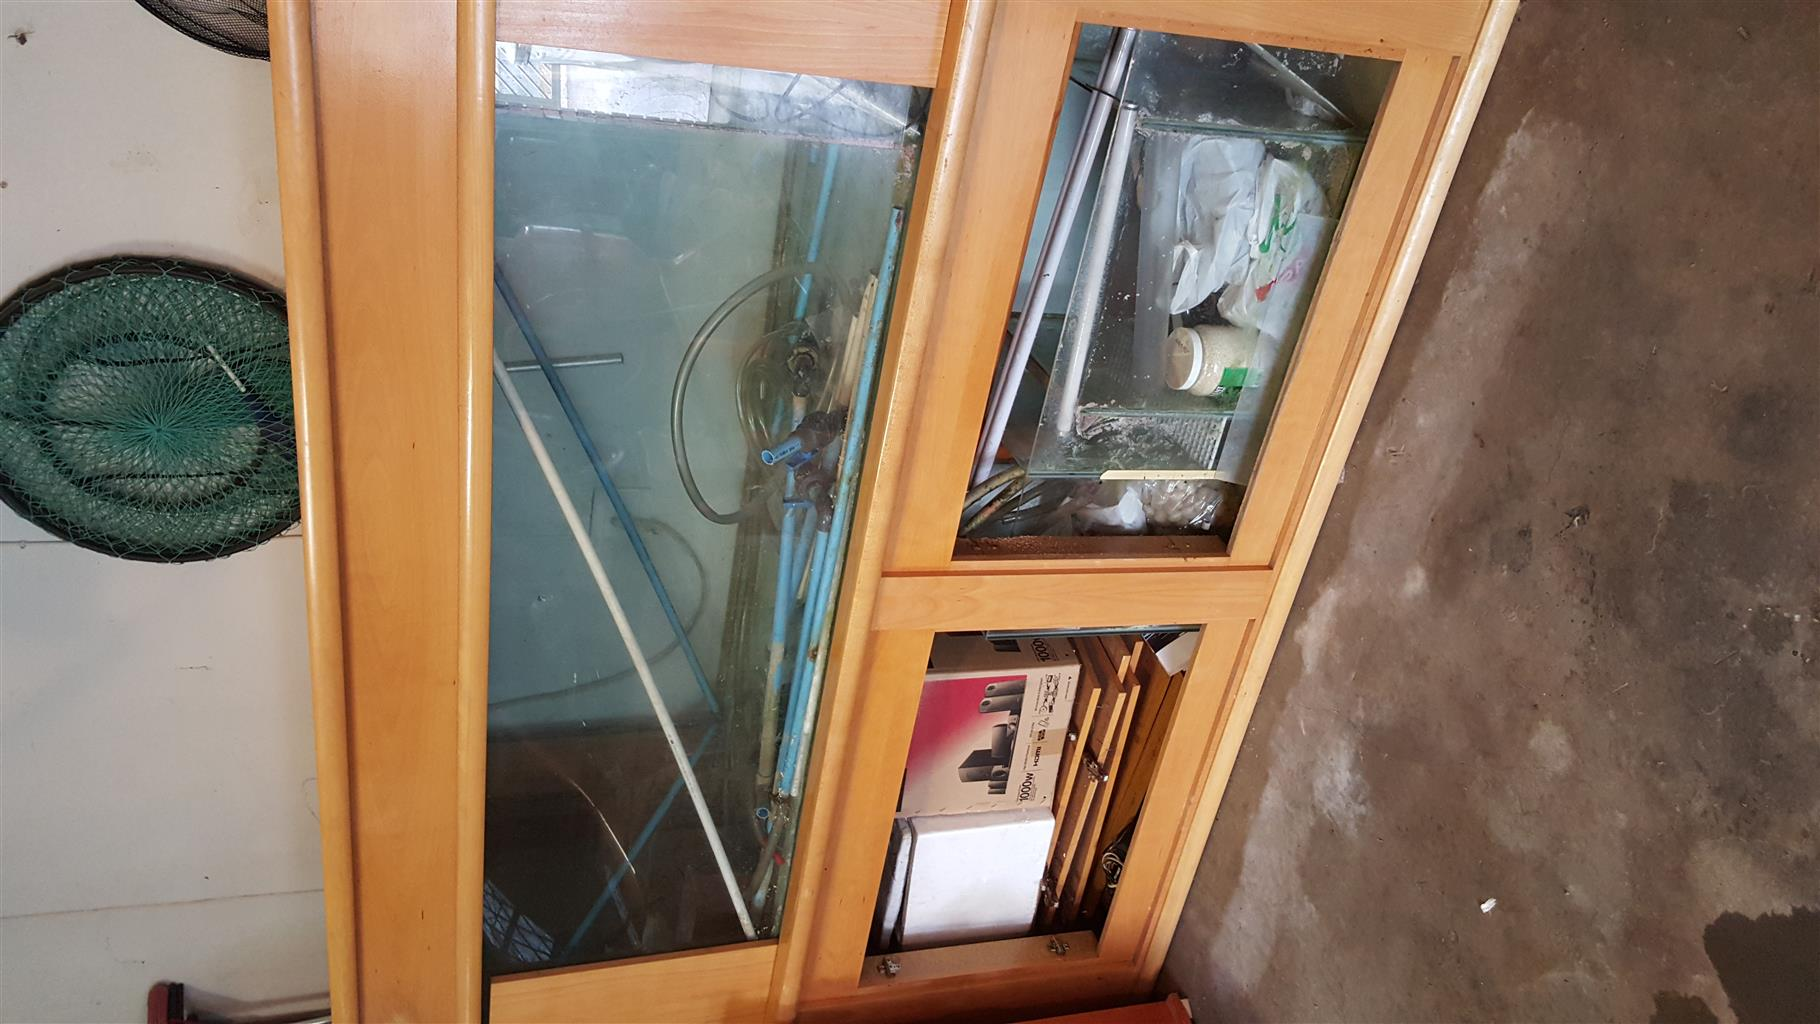 Marine Fishtank for sale.Includes Sump and cabinets. 6 Foot (1.8m)Doors on both sides.